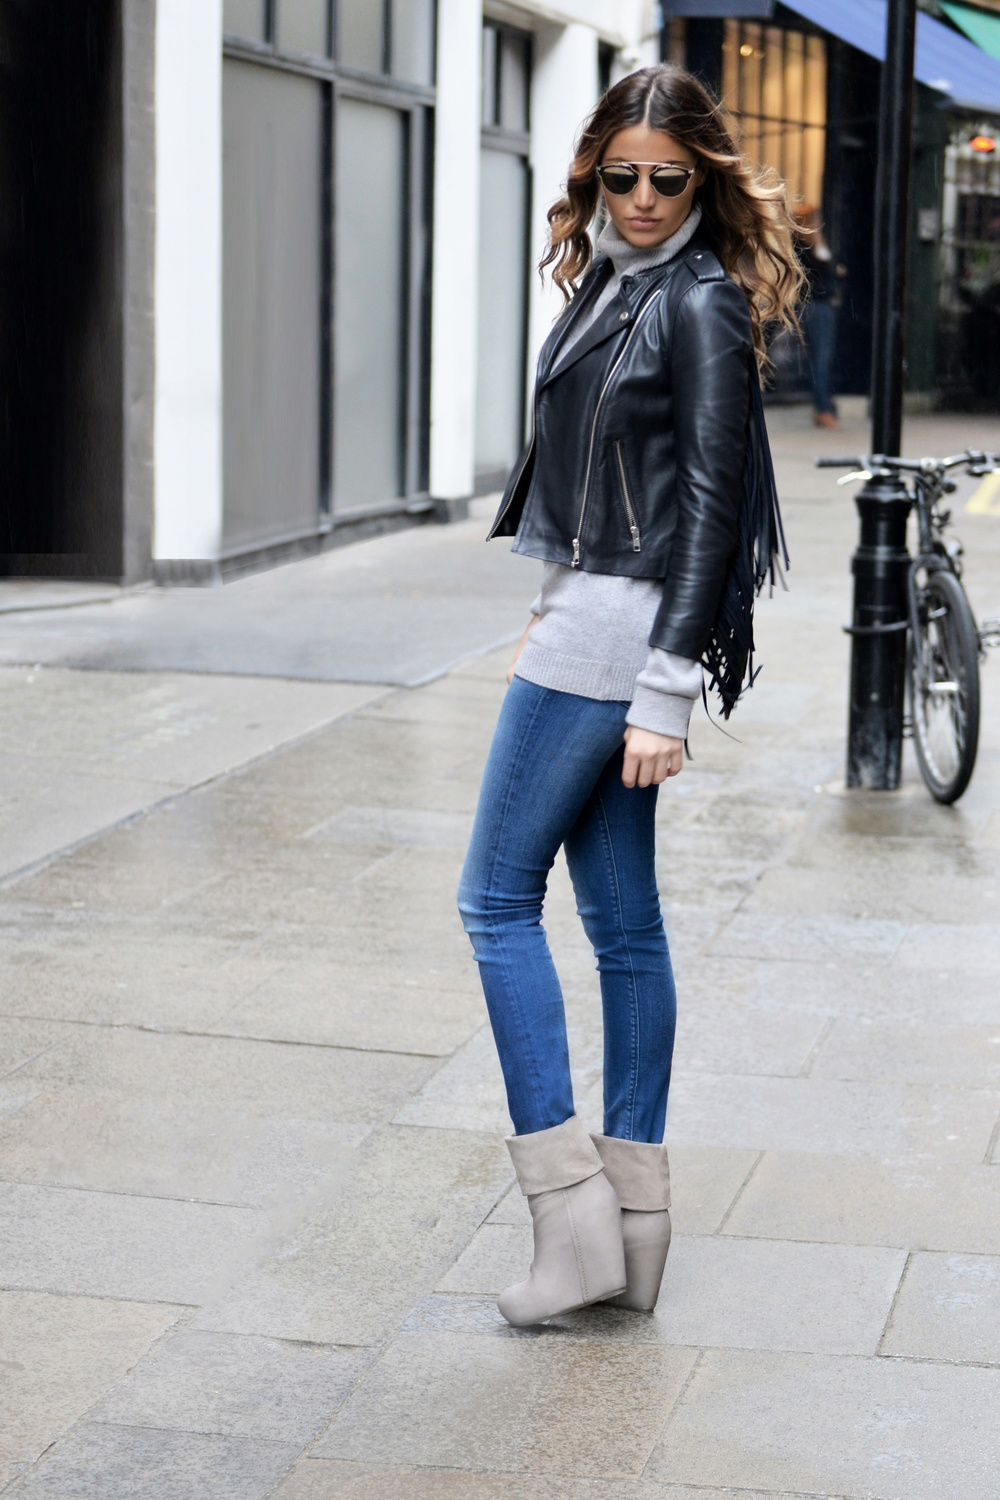 AUTUMN WEAR. OCTOBER IN LONDON: NAVY LAMBSKIN FRINGE JACKET BY MAJE, GREY CASHMERE & SCOTCH&SODA'S JEANS OUTFIT. STYLED BY FASHION INFLUENCER MAUREEN SOPHIE KRAGT. WWW.THEVANILLAWOODS.COM